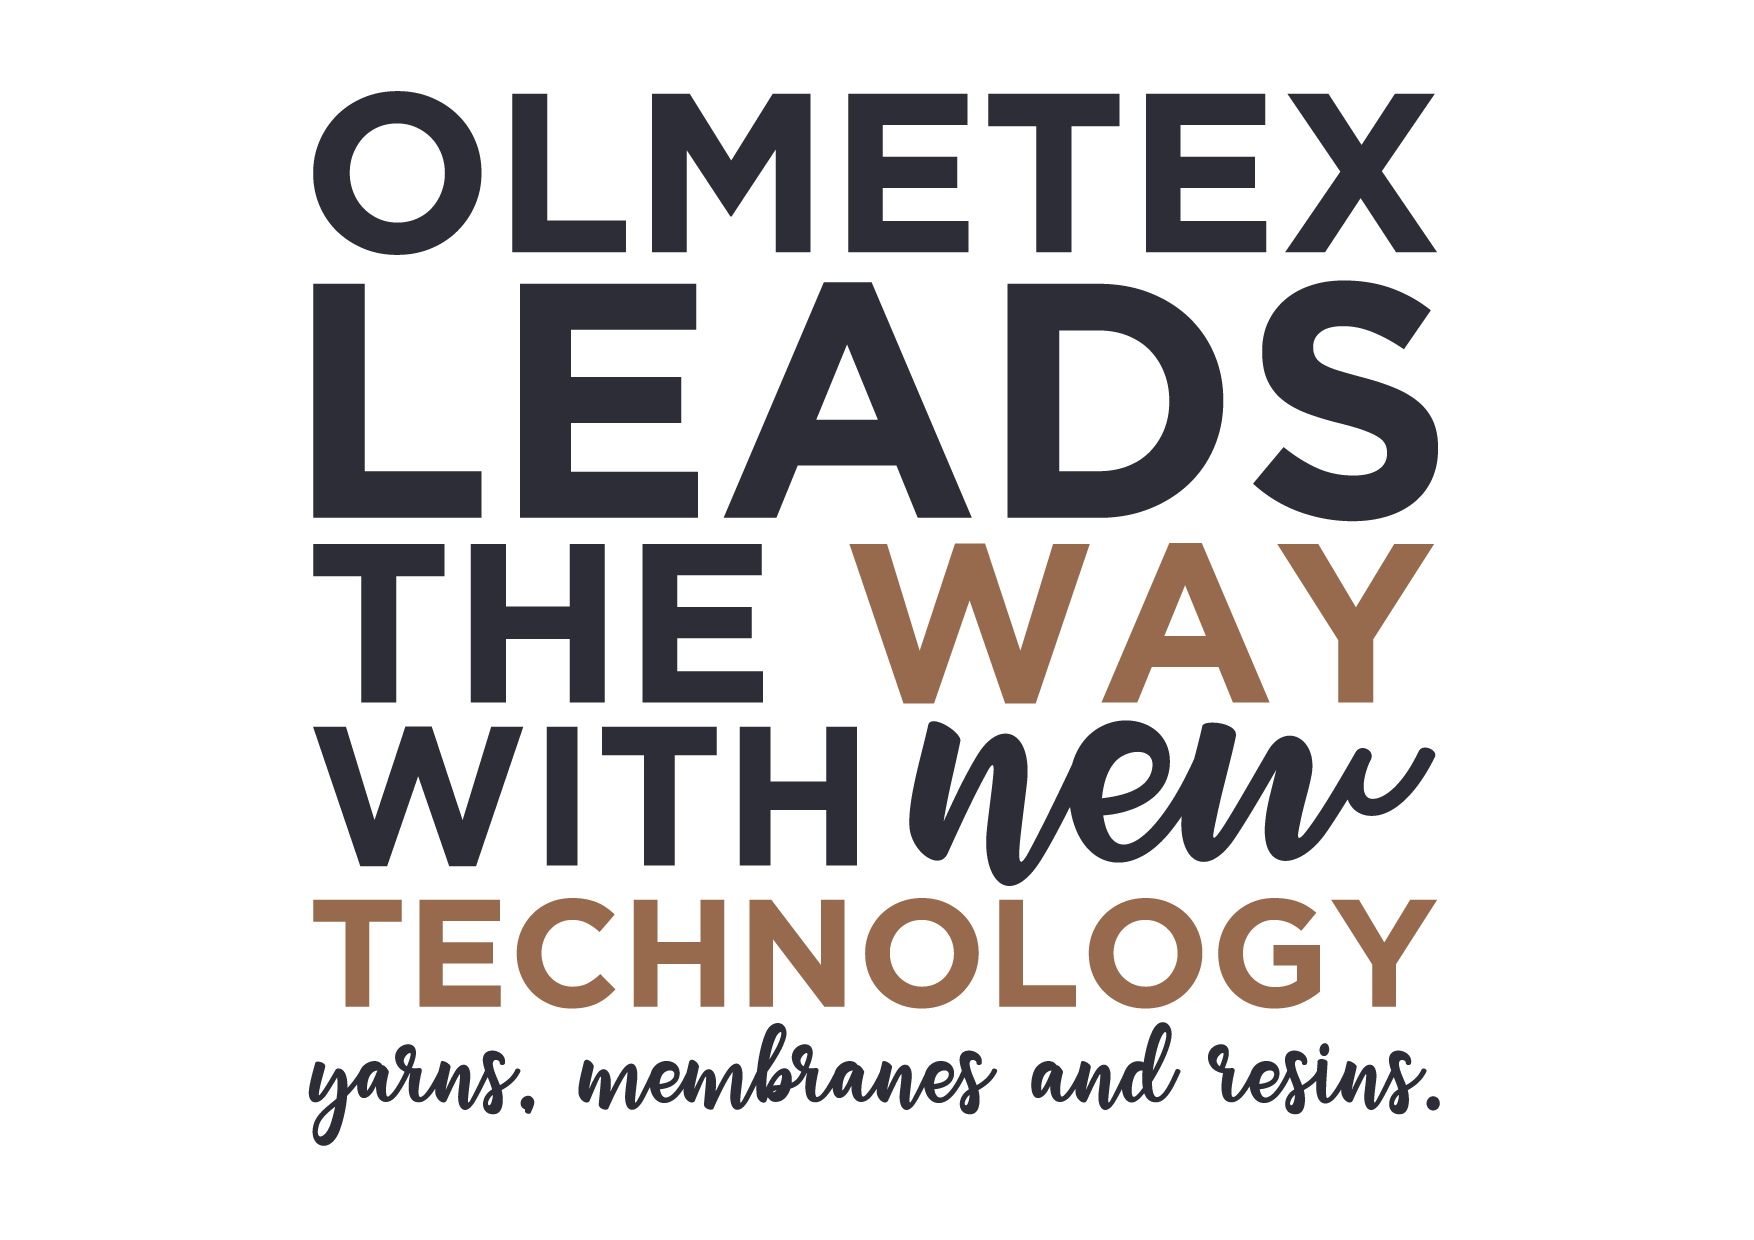 olmetex-leaves-the-way-with-new-technology